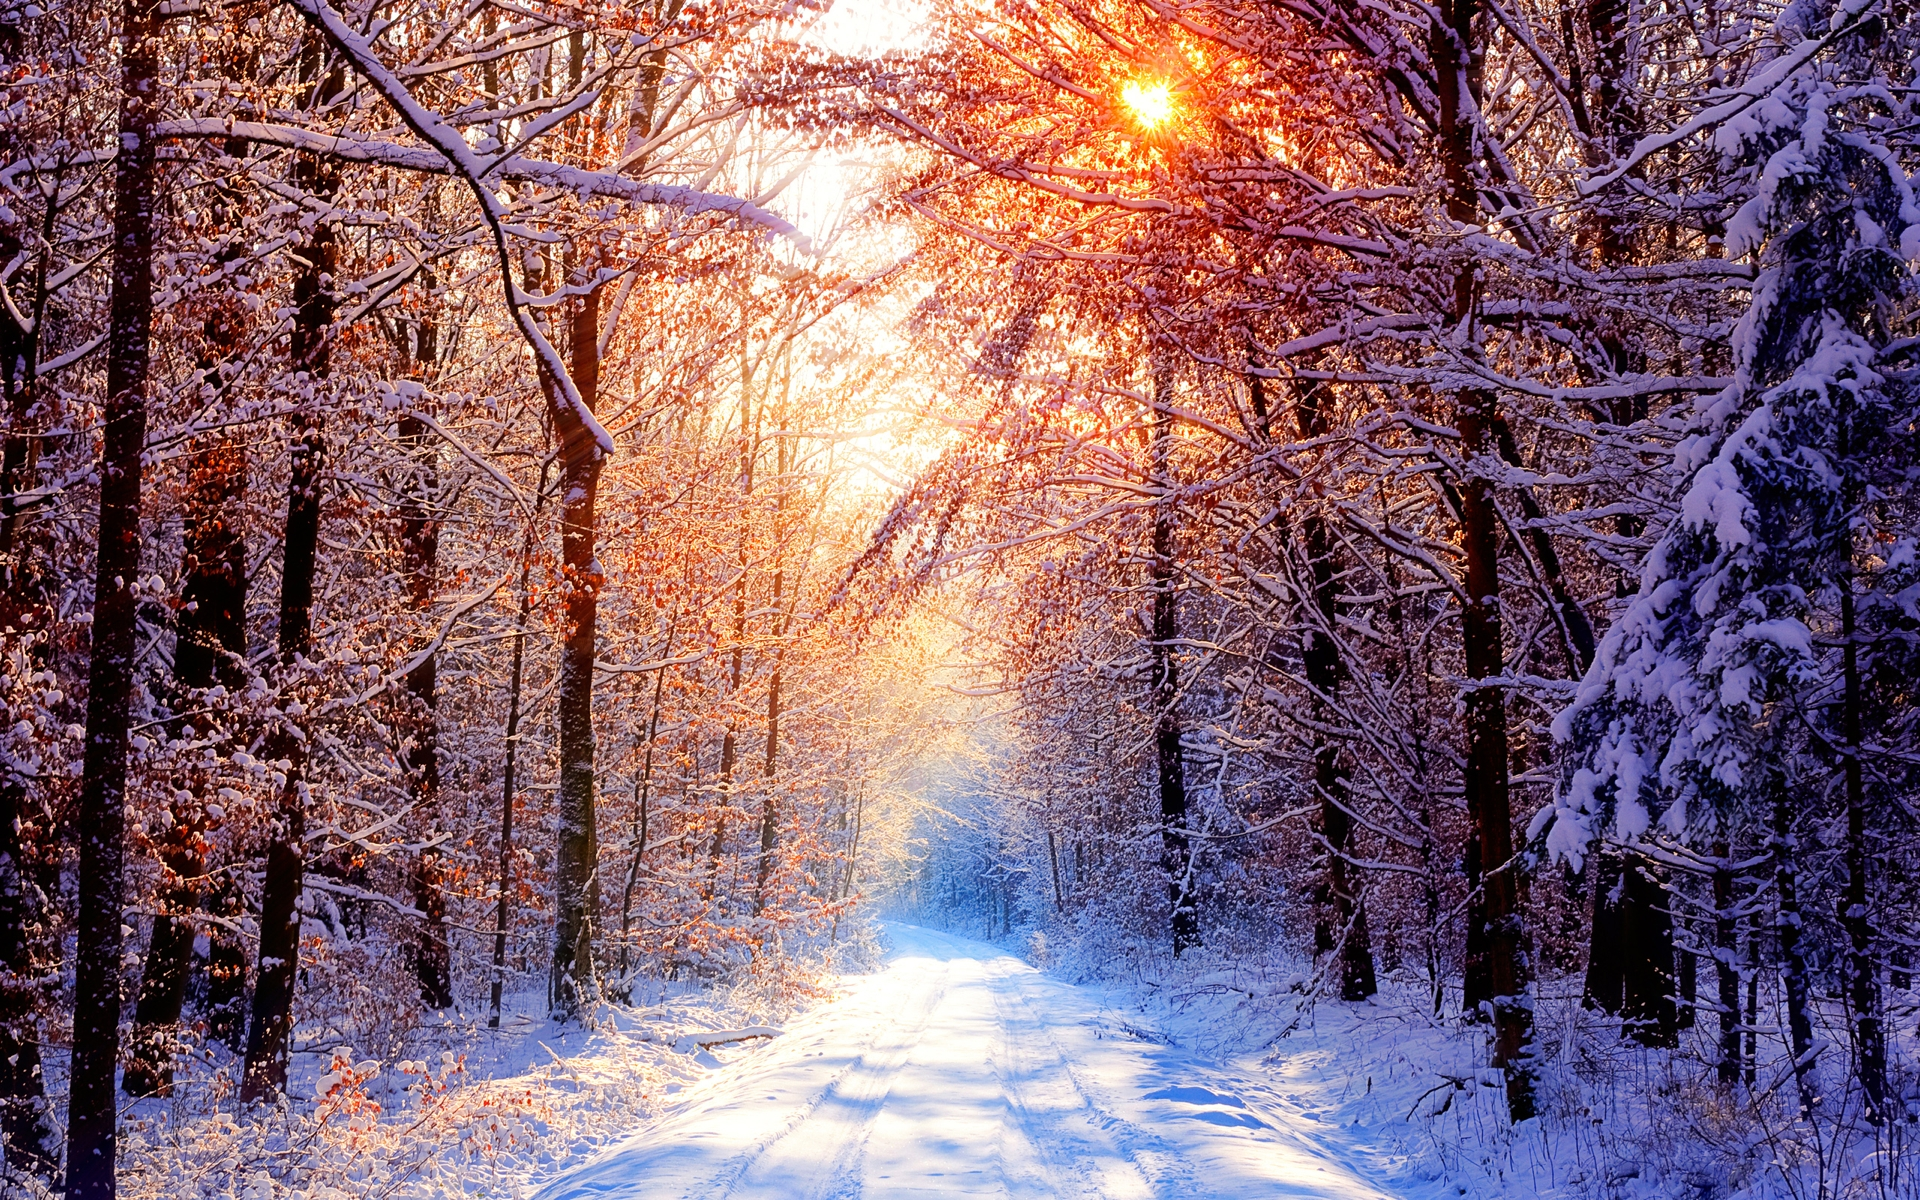 Animated Sunset Wallpaper Daily Wallpaper Snowy Forest Road On A Beautiful Winter